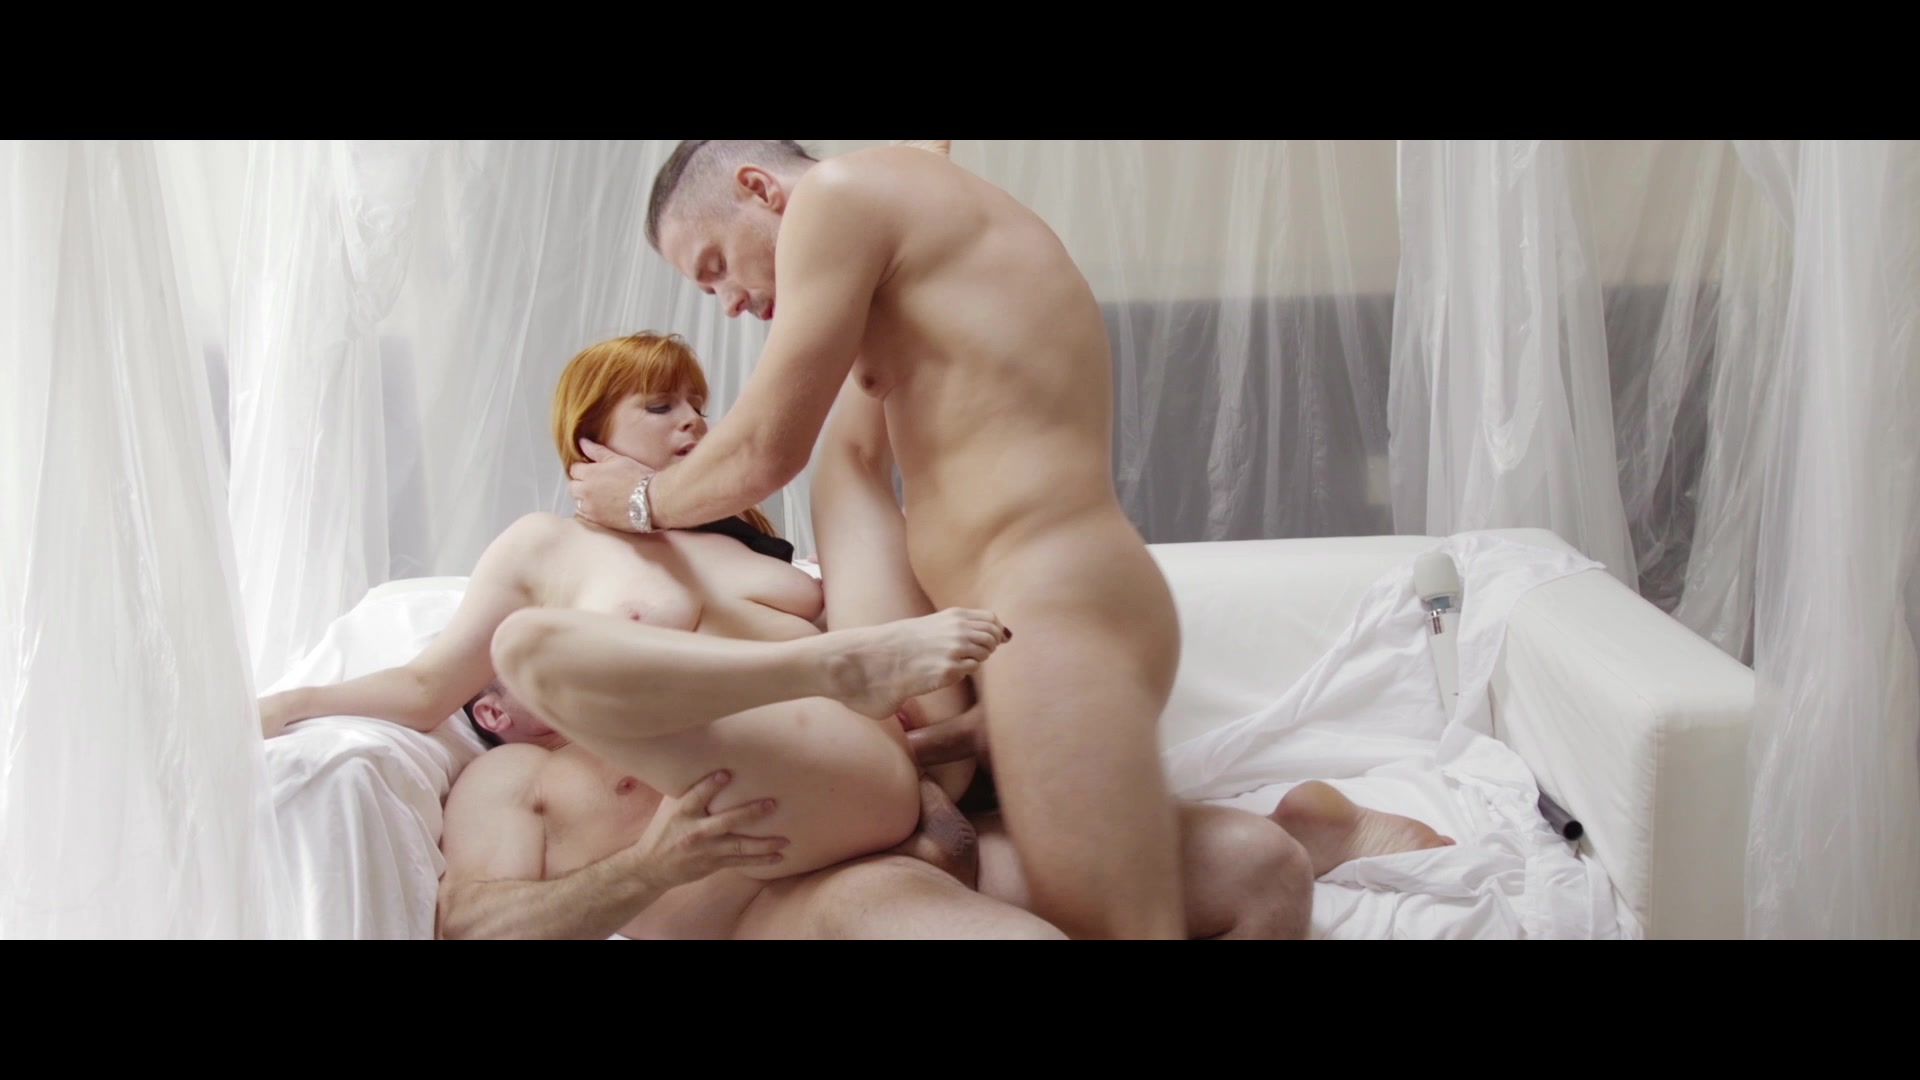 Scene with John Strong, Mick Blue and Penny Pax - image 20 out of 20